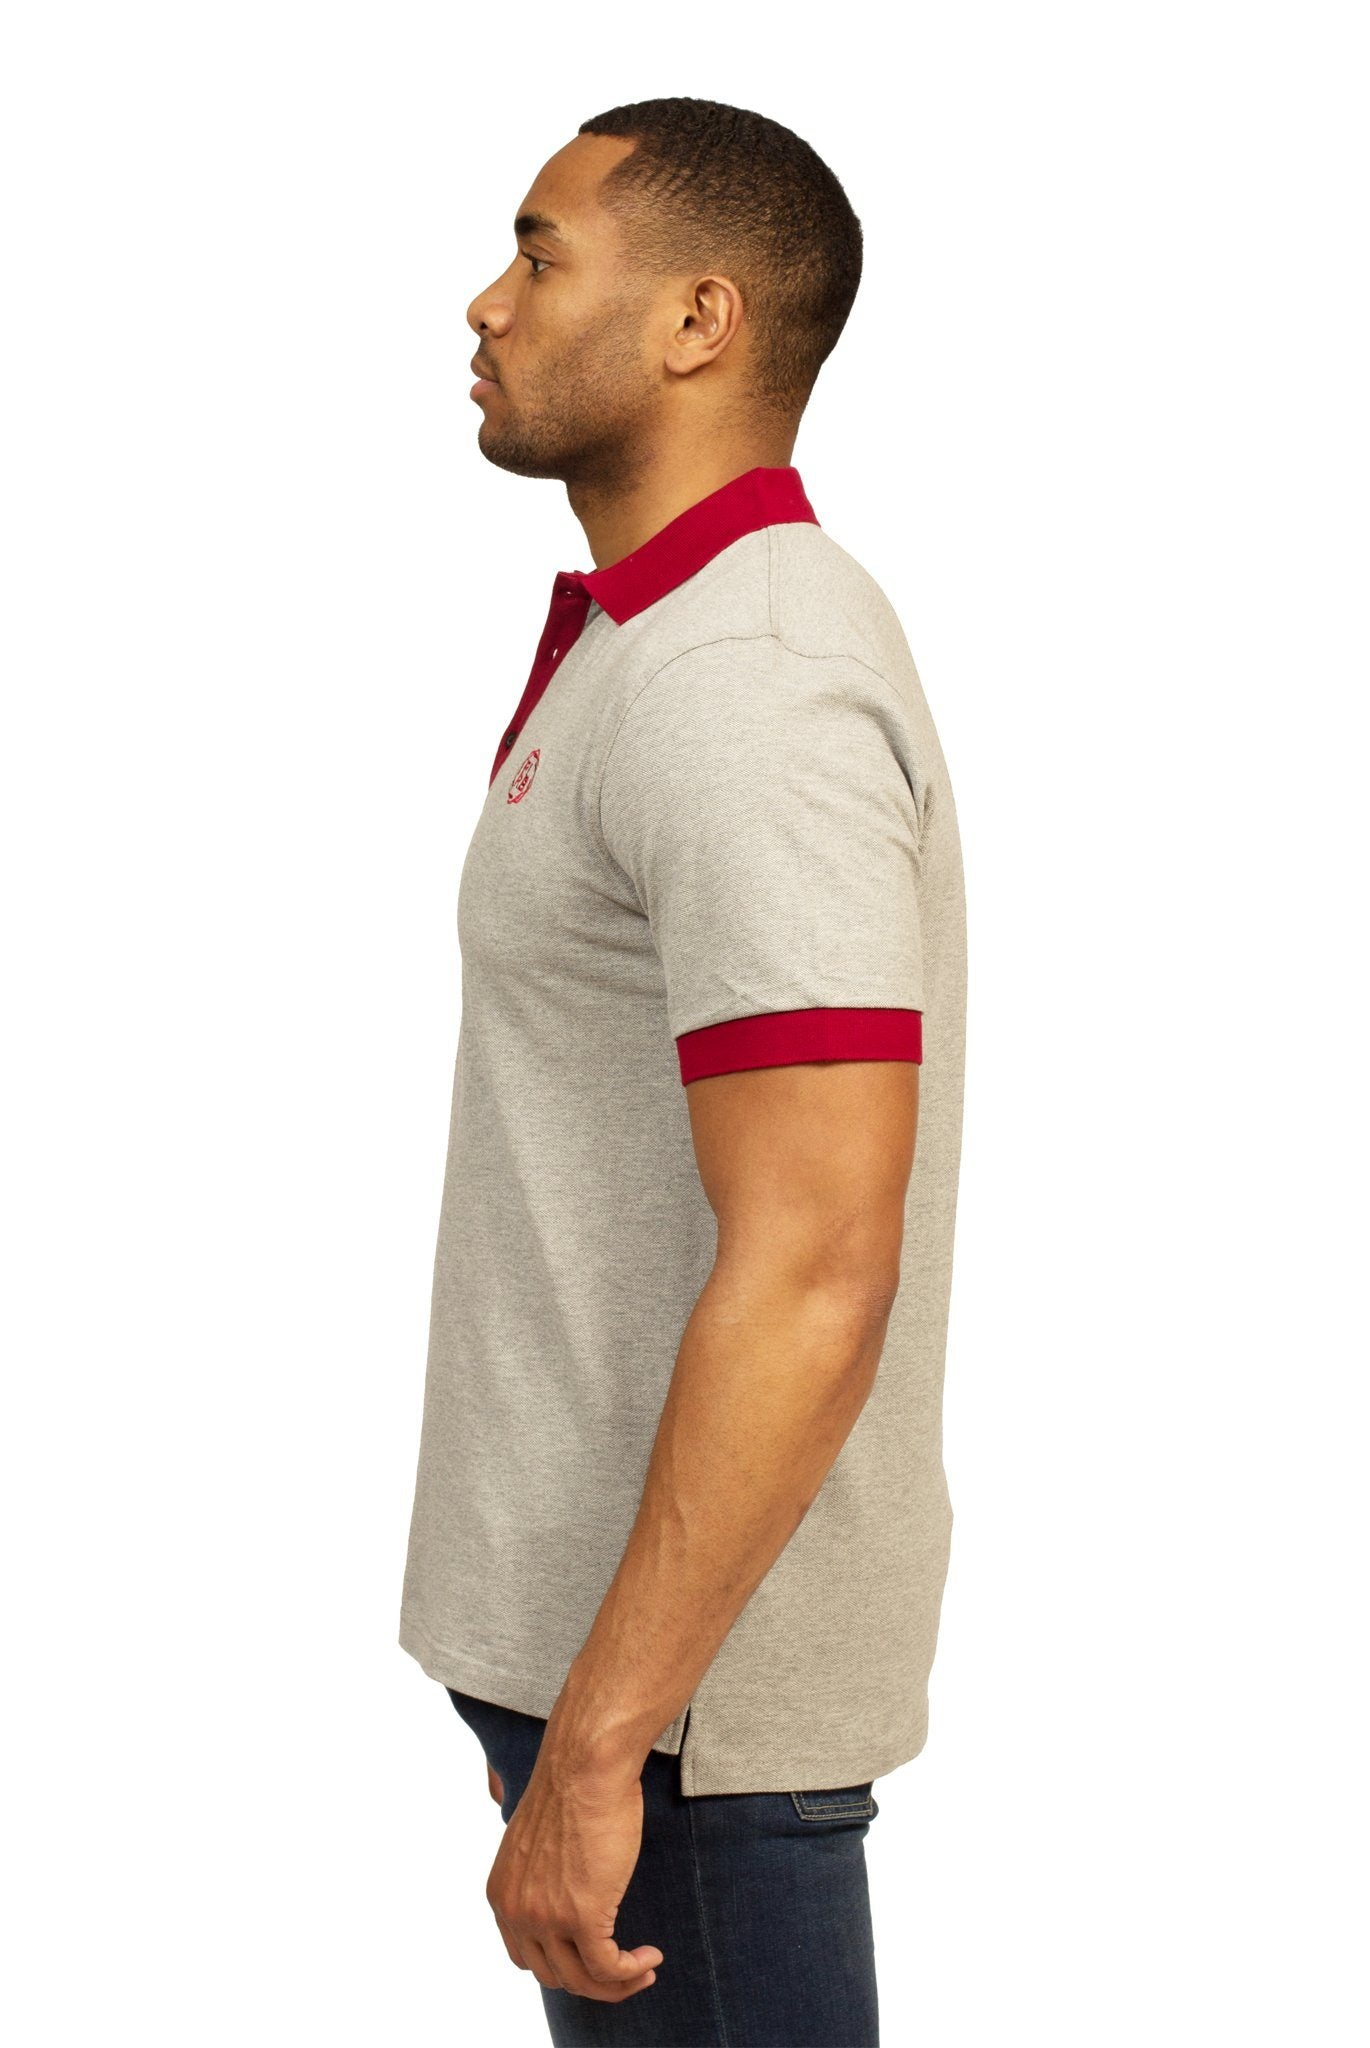 HEALDSBURG POLO SHIRT IN HEATHER GREY | Poor Little Rich Boy Clothing